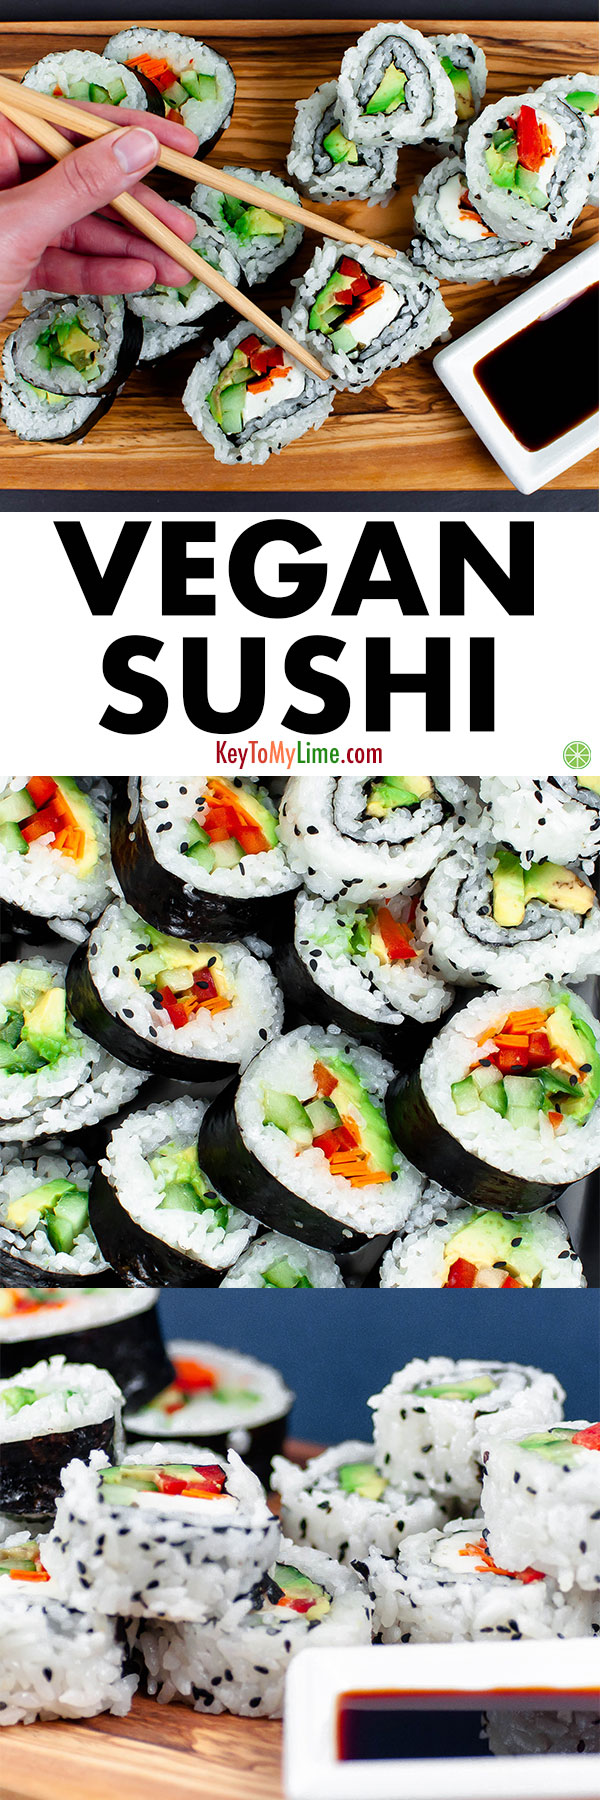 Love this recipe showing how to make easy vegetarian sushi! It's SO good! Vegan sushi rolls are one of my favorite foods, and now I love being able to make it at home. #veganrecipes #plantbased #glutenfreerecipes #sushi #sushirolls #sushirecipes | keytomylime.com